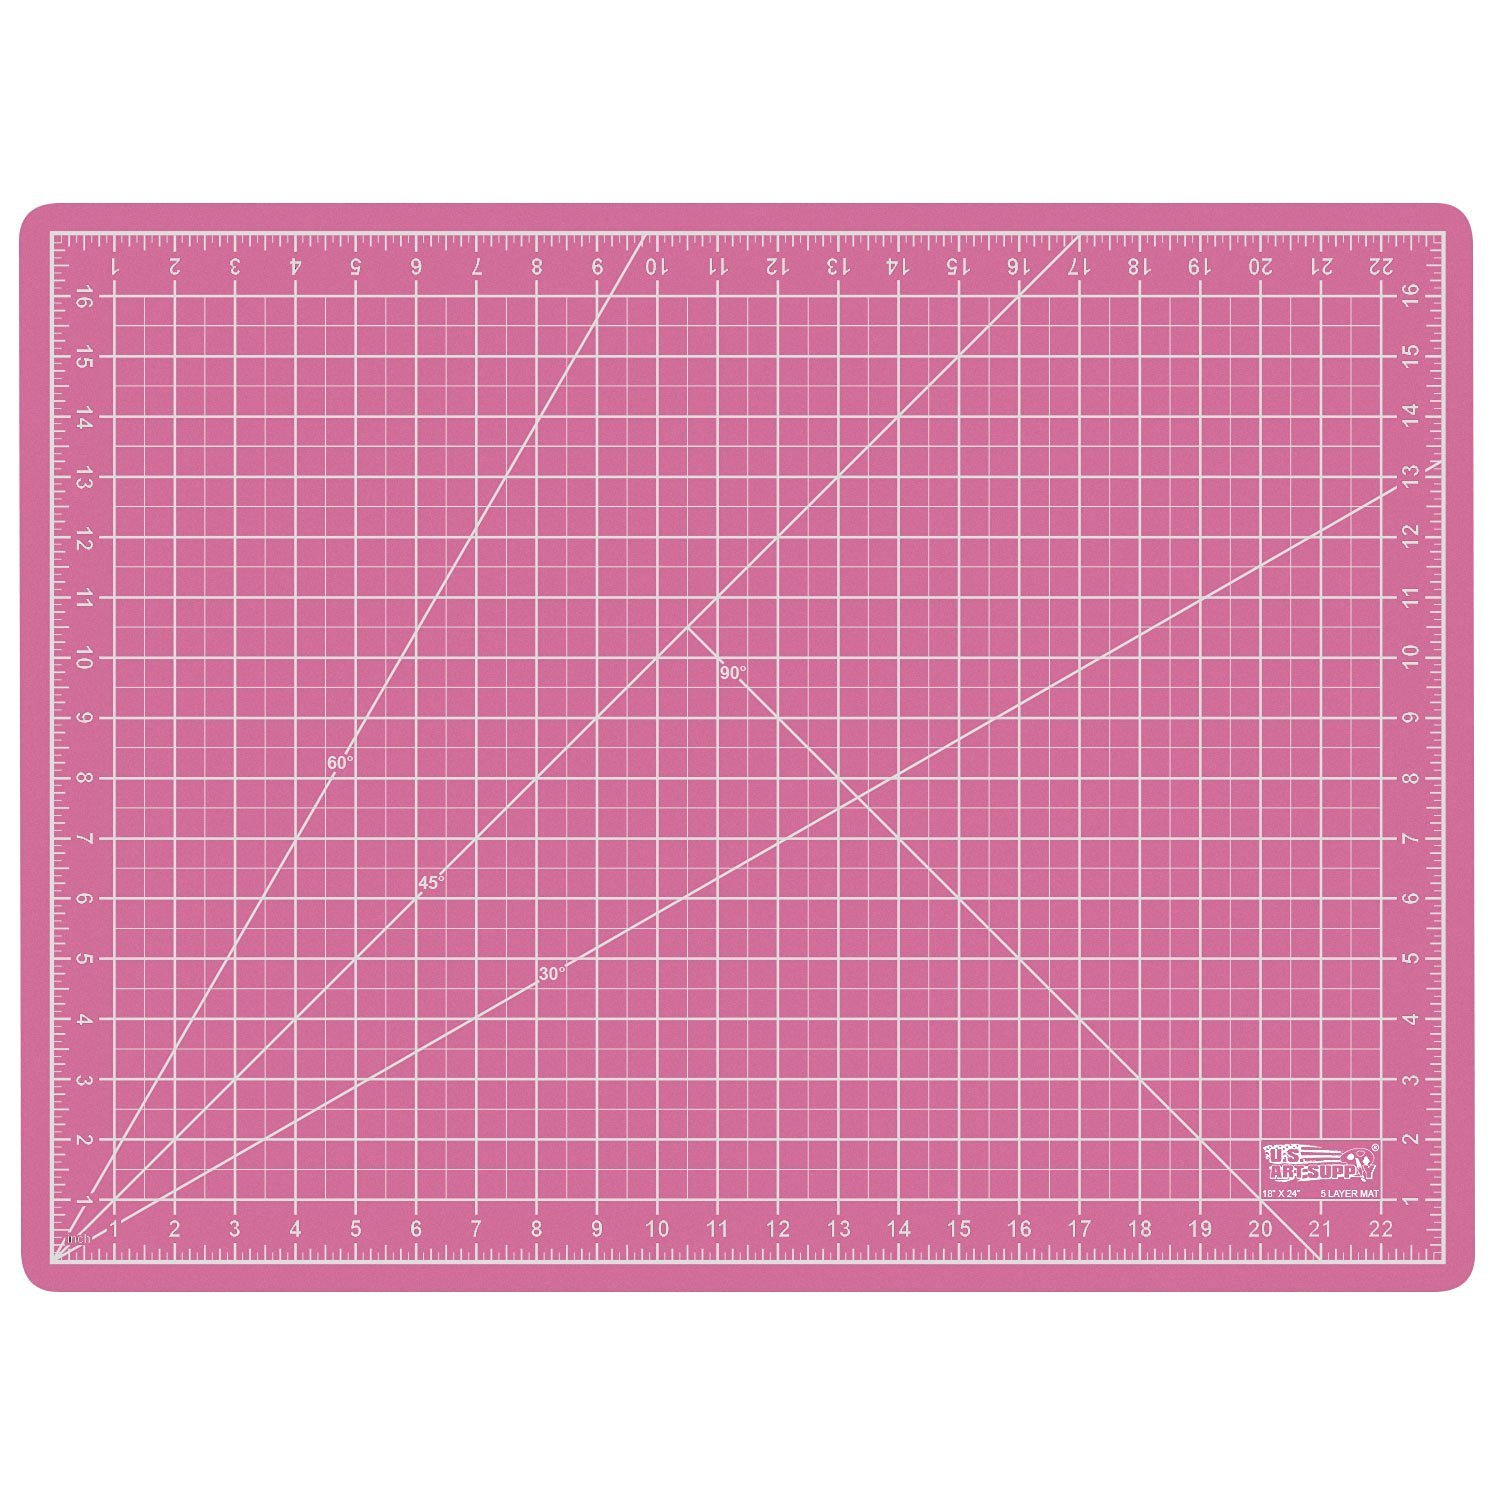 "US Art Supply 18"" x 24"" PINK/BLUE Professional Self Healing 5-Ply Double Sided Durable Non-Slip PVC Cutting Mat Great for Scrapbooking, Quilting, Sewing and all Arts & Crafts Projects (Choose Green/Black or Pink/Blue Below)"